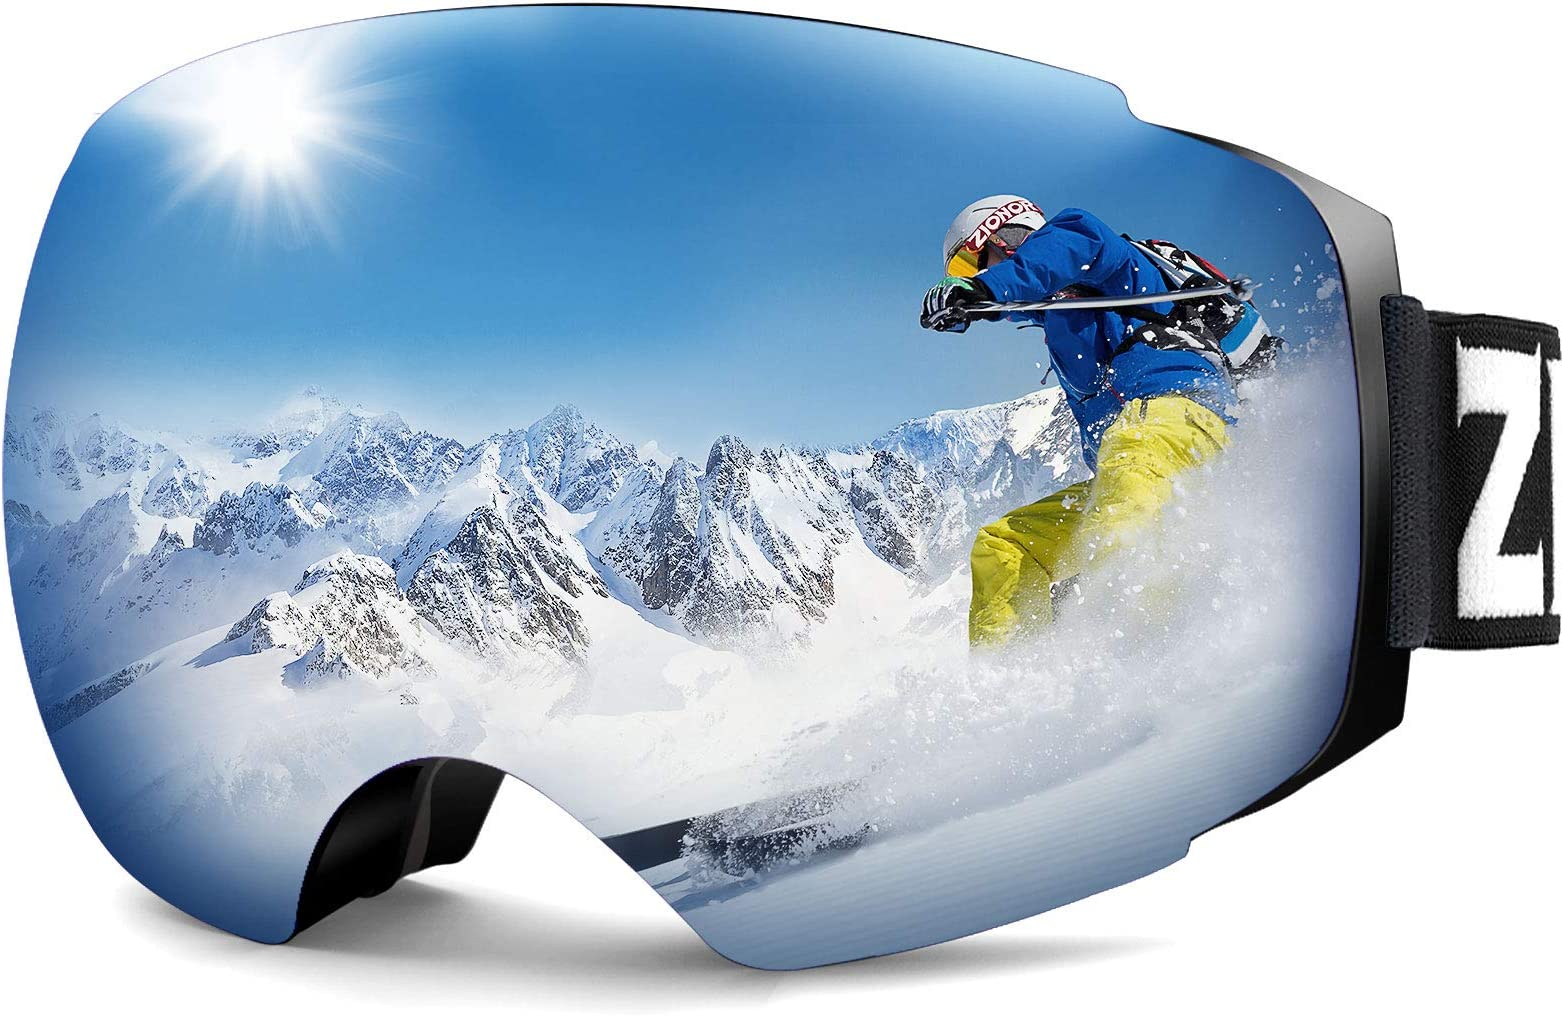 ZIONOR X4 Ski Goggles Magnetic Lens - Snowboard Snow Goggles for Men Women Adult